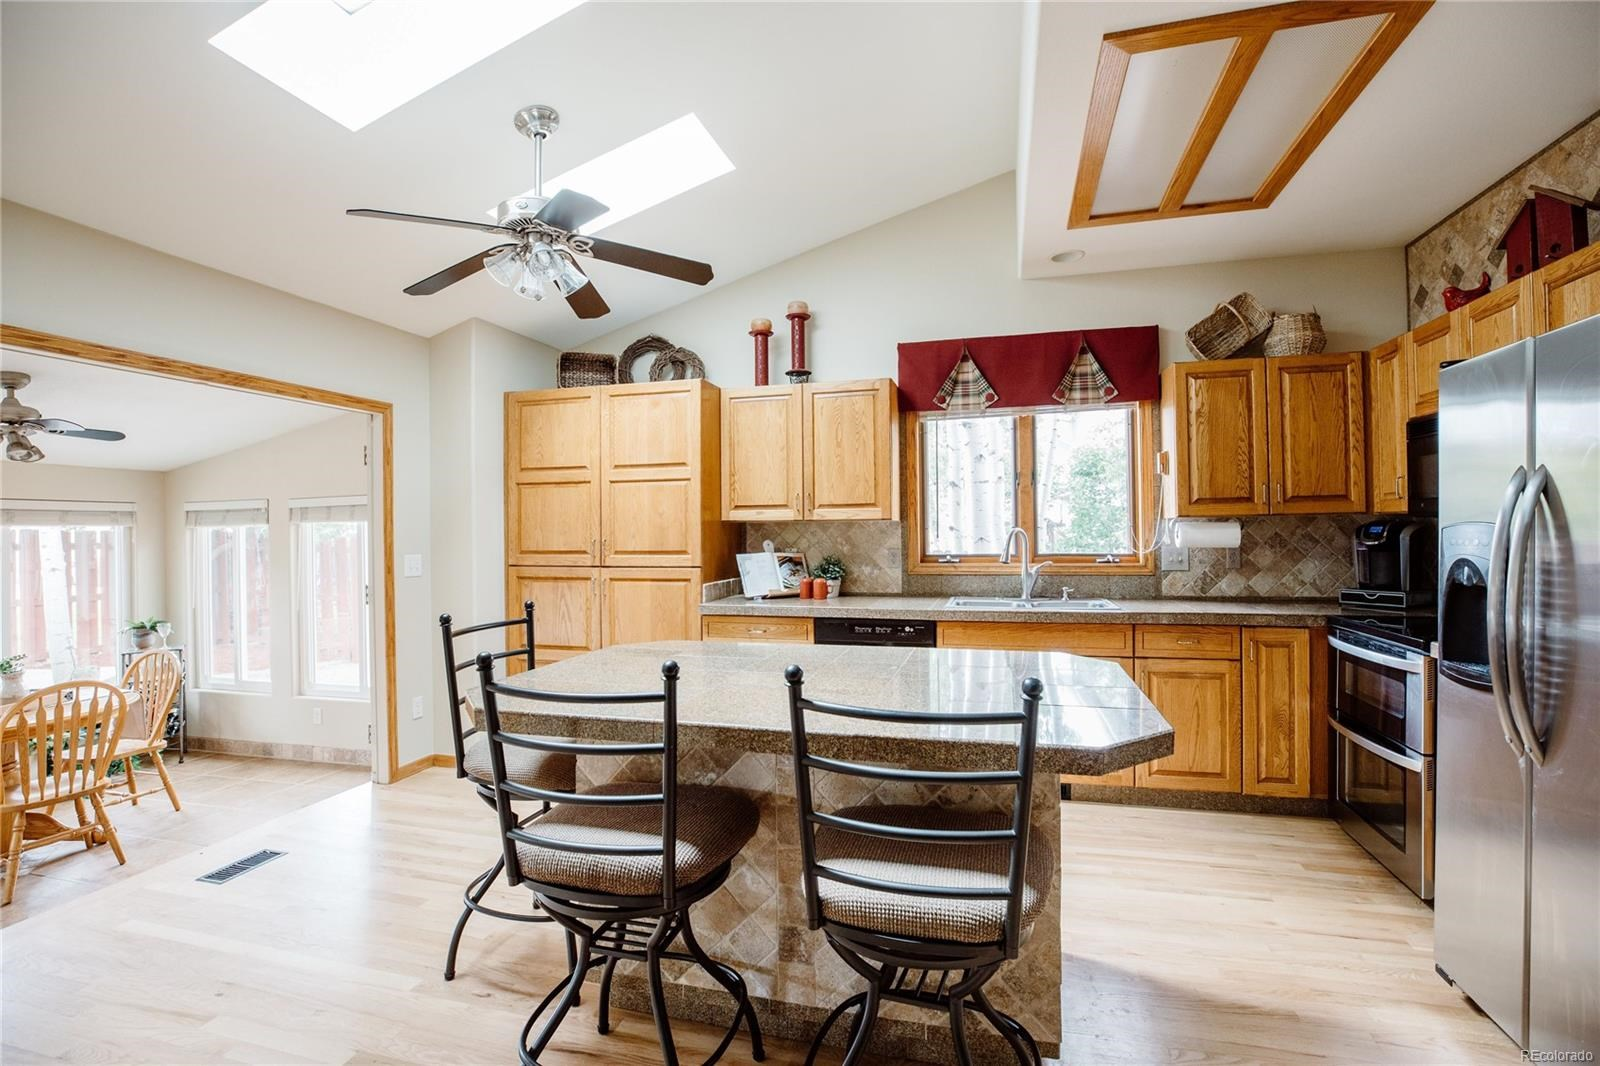 MLS# 4033949 - 15 - 3713 Ashmount Drive, Fort Collins, CO 80525